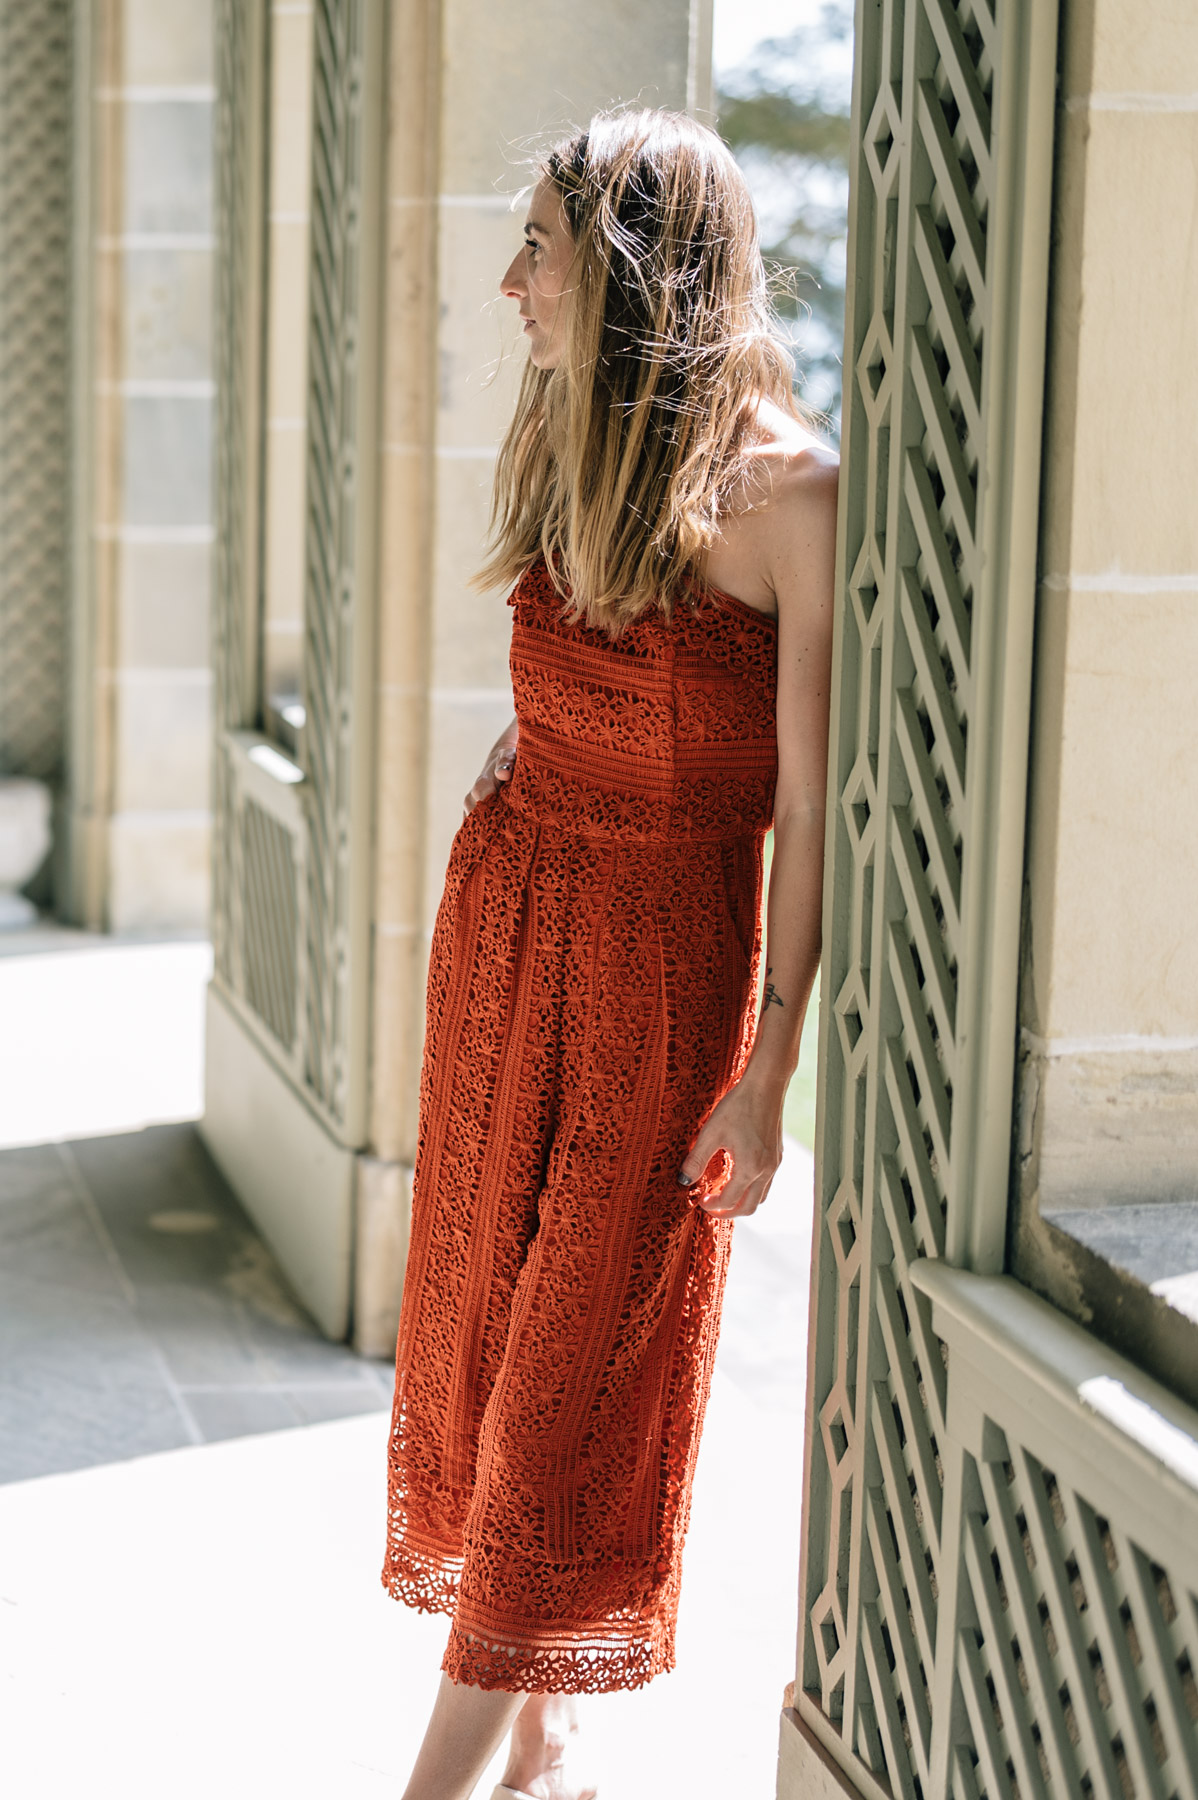 Jess Ann Kirby styles a strapless lace jumpsuit for fall wedding style